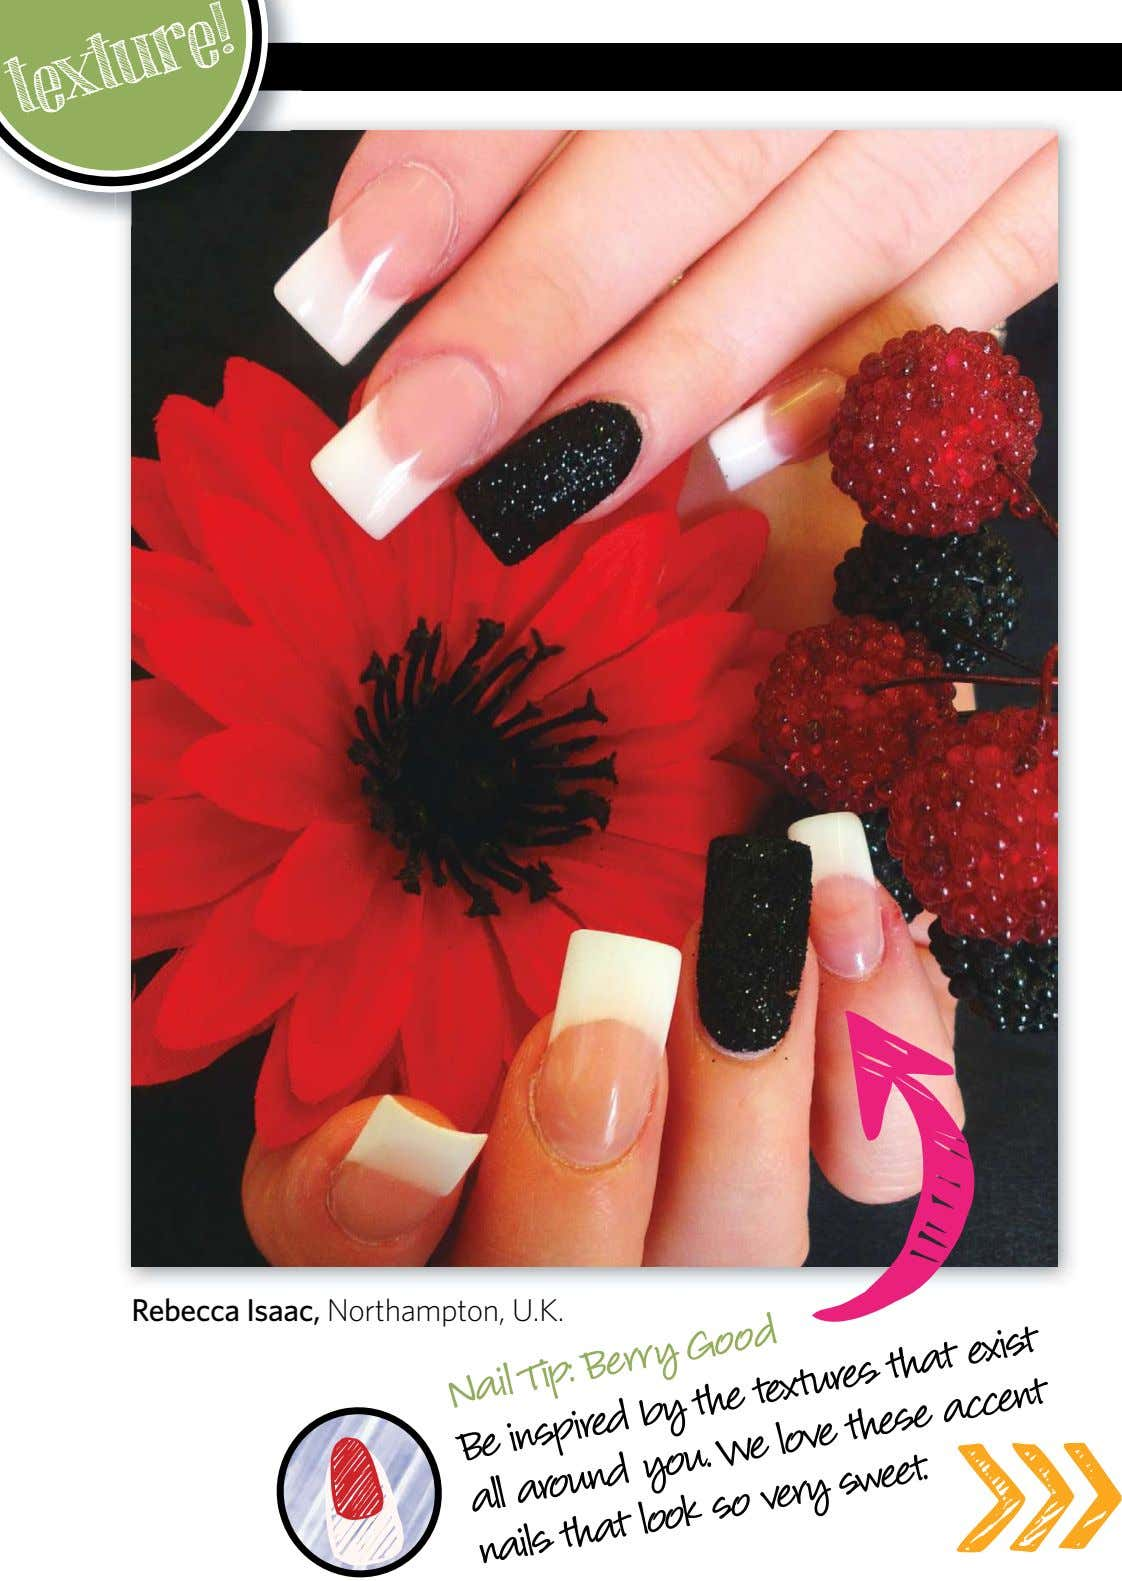 texture! Rebecca Isaac, Northampton, U.K. Nail Tip: Berry Good Be nails around inspired the We